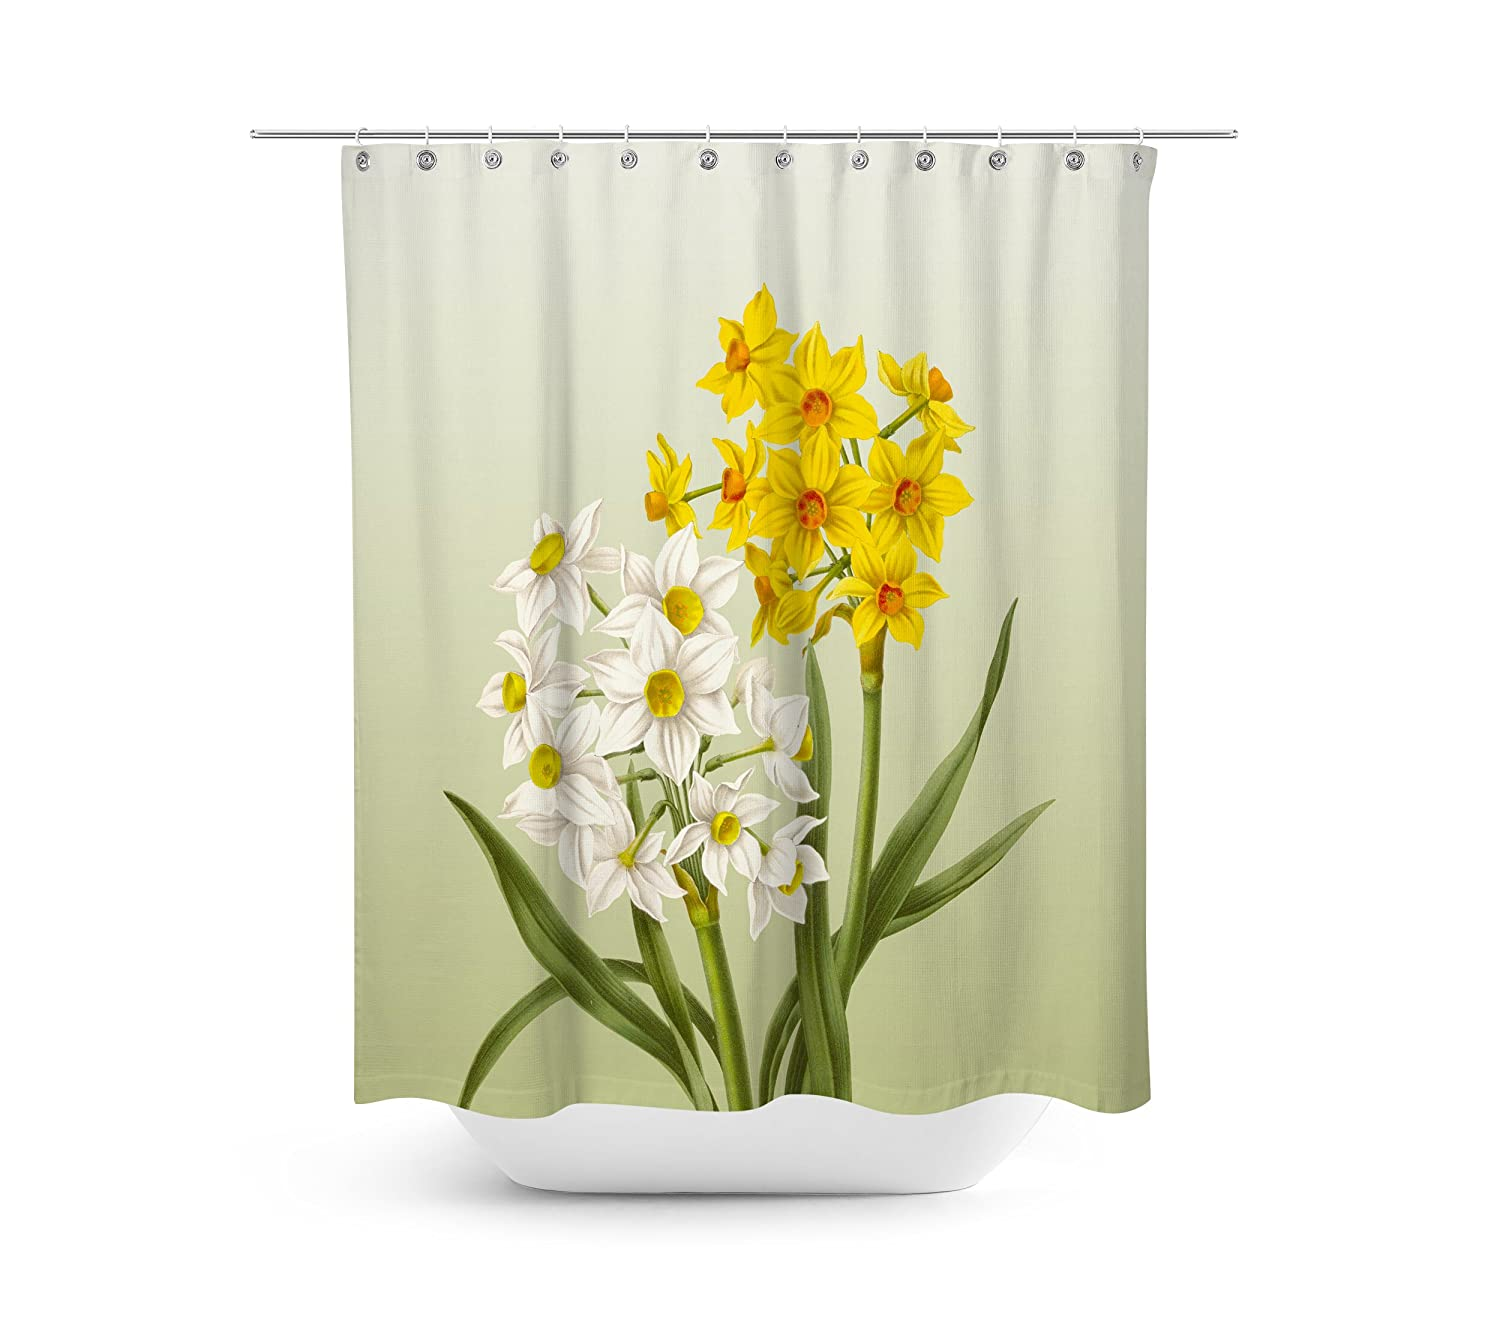 Livilan Tropical Plant Banana Leaf Shower Curtain Set 72